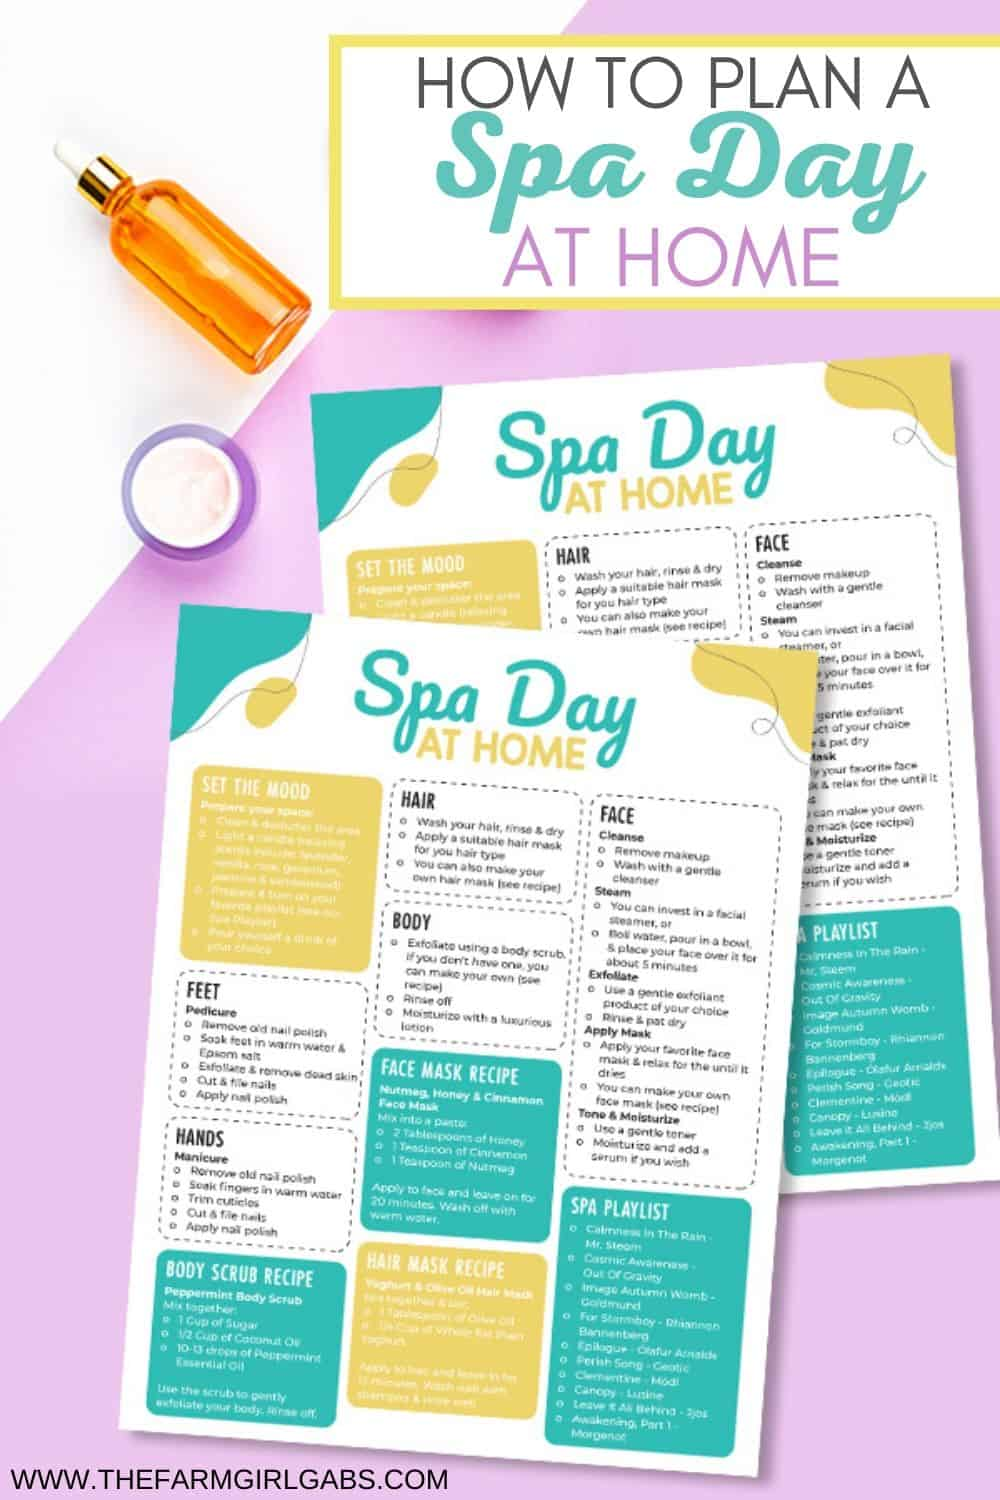 Treat yourself to some much-needed pampering. Download this free printable for planning the ultimate Spa Day at Home for Mother's Day.